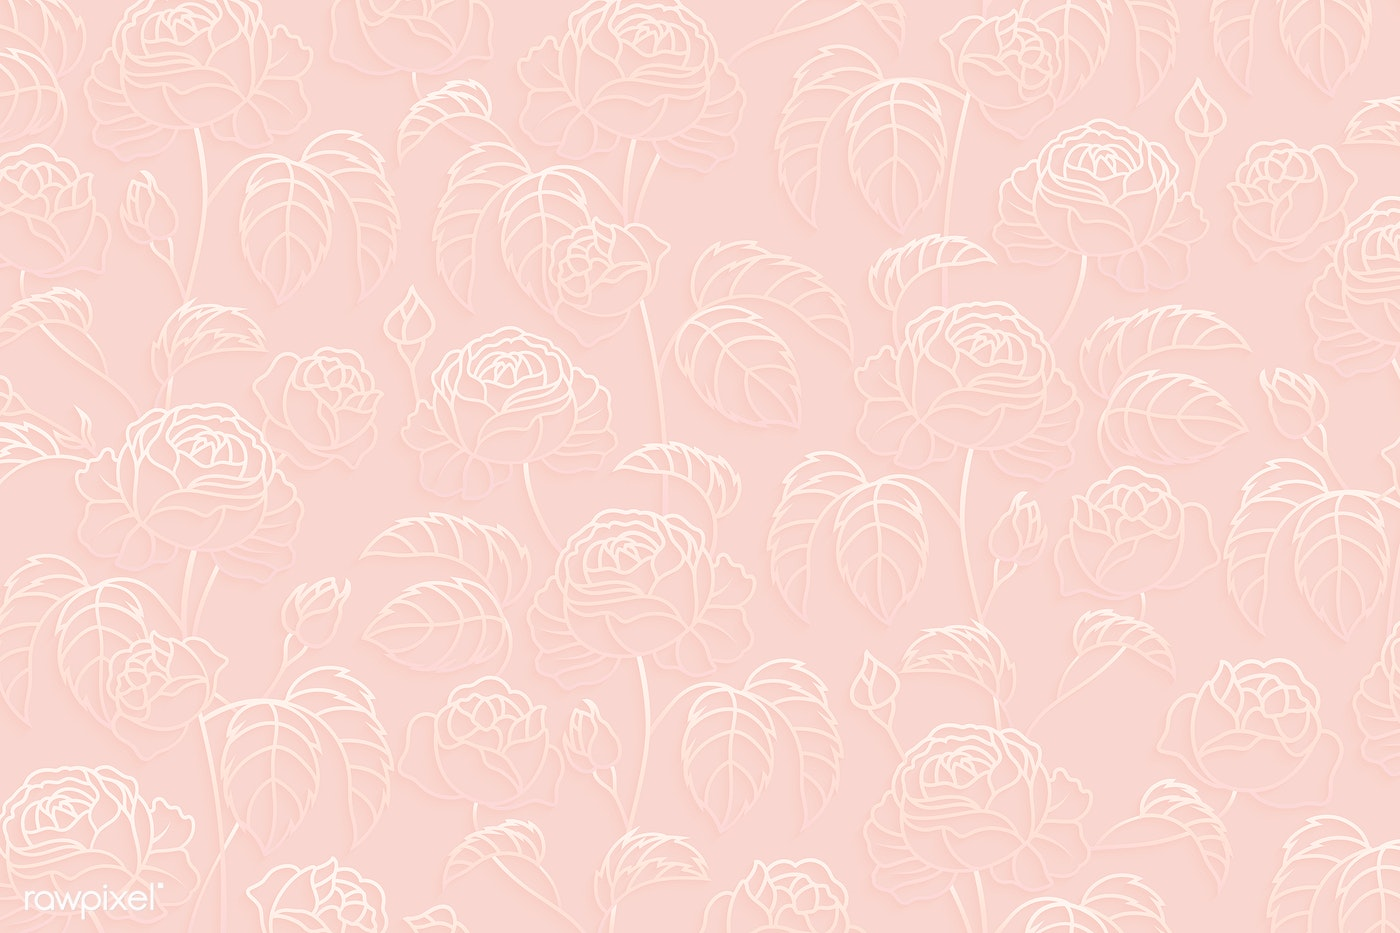 Floral Patterned Background Royalty Free Vector 1218075